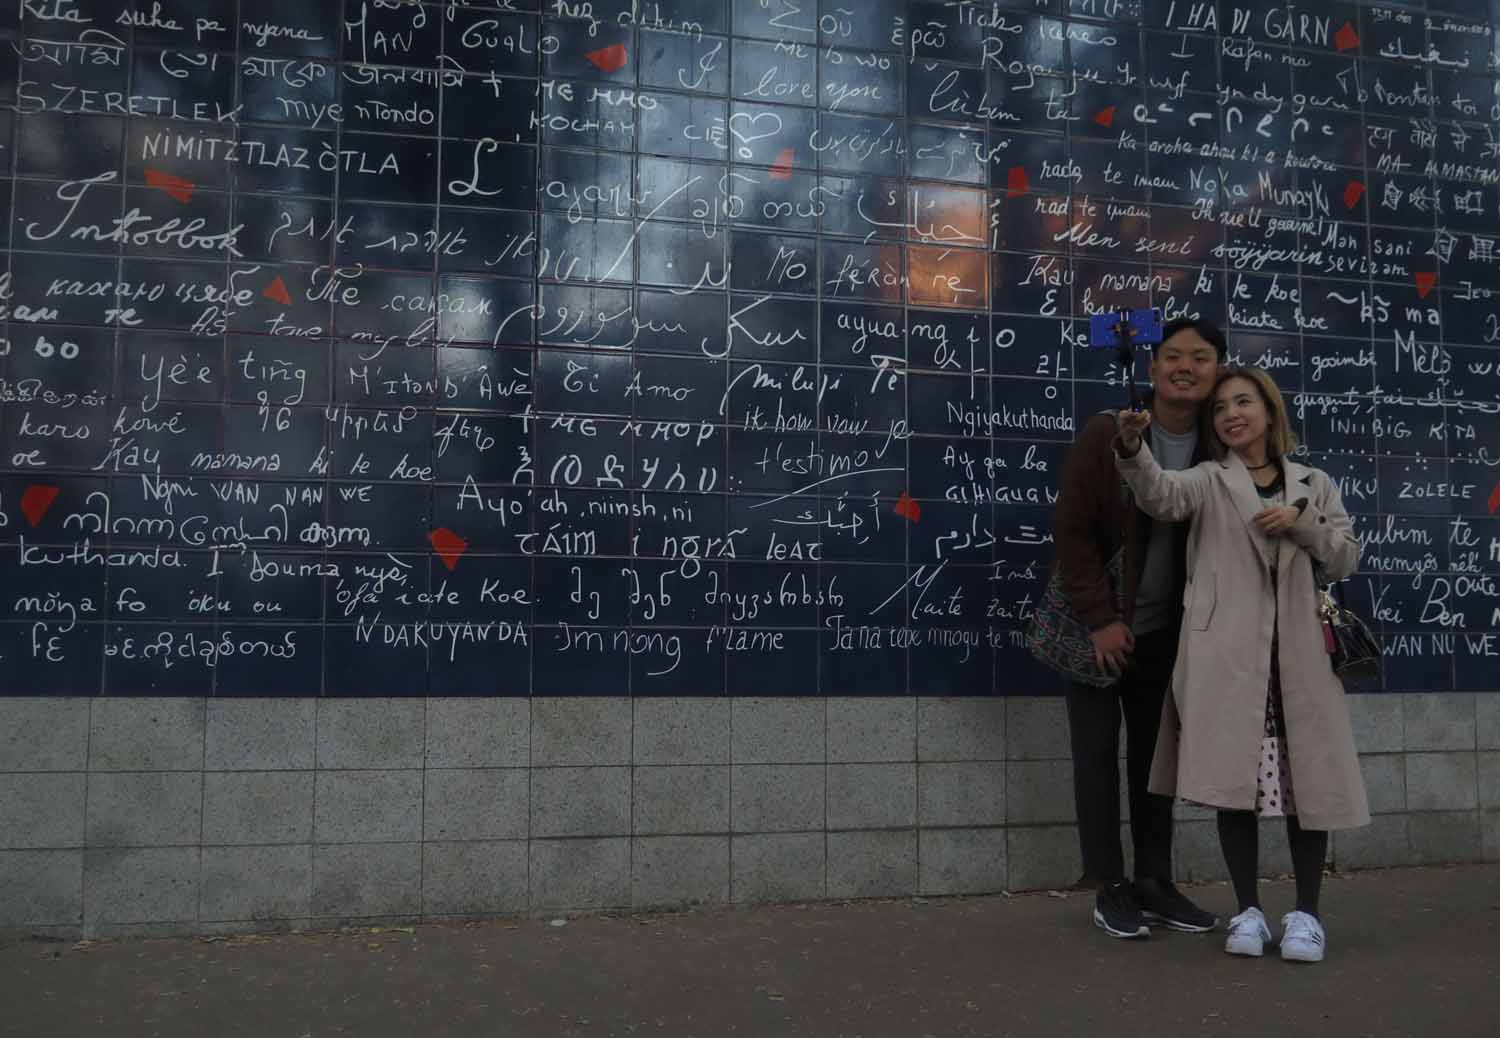 France-Paris-I-Love-You-Wall